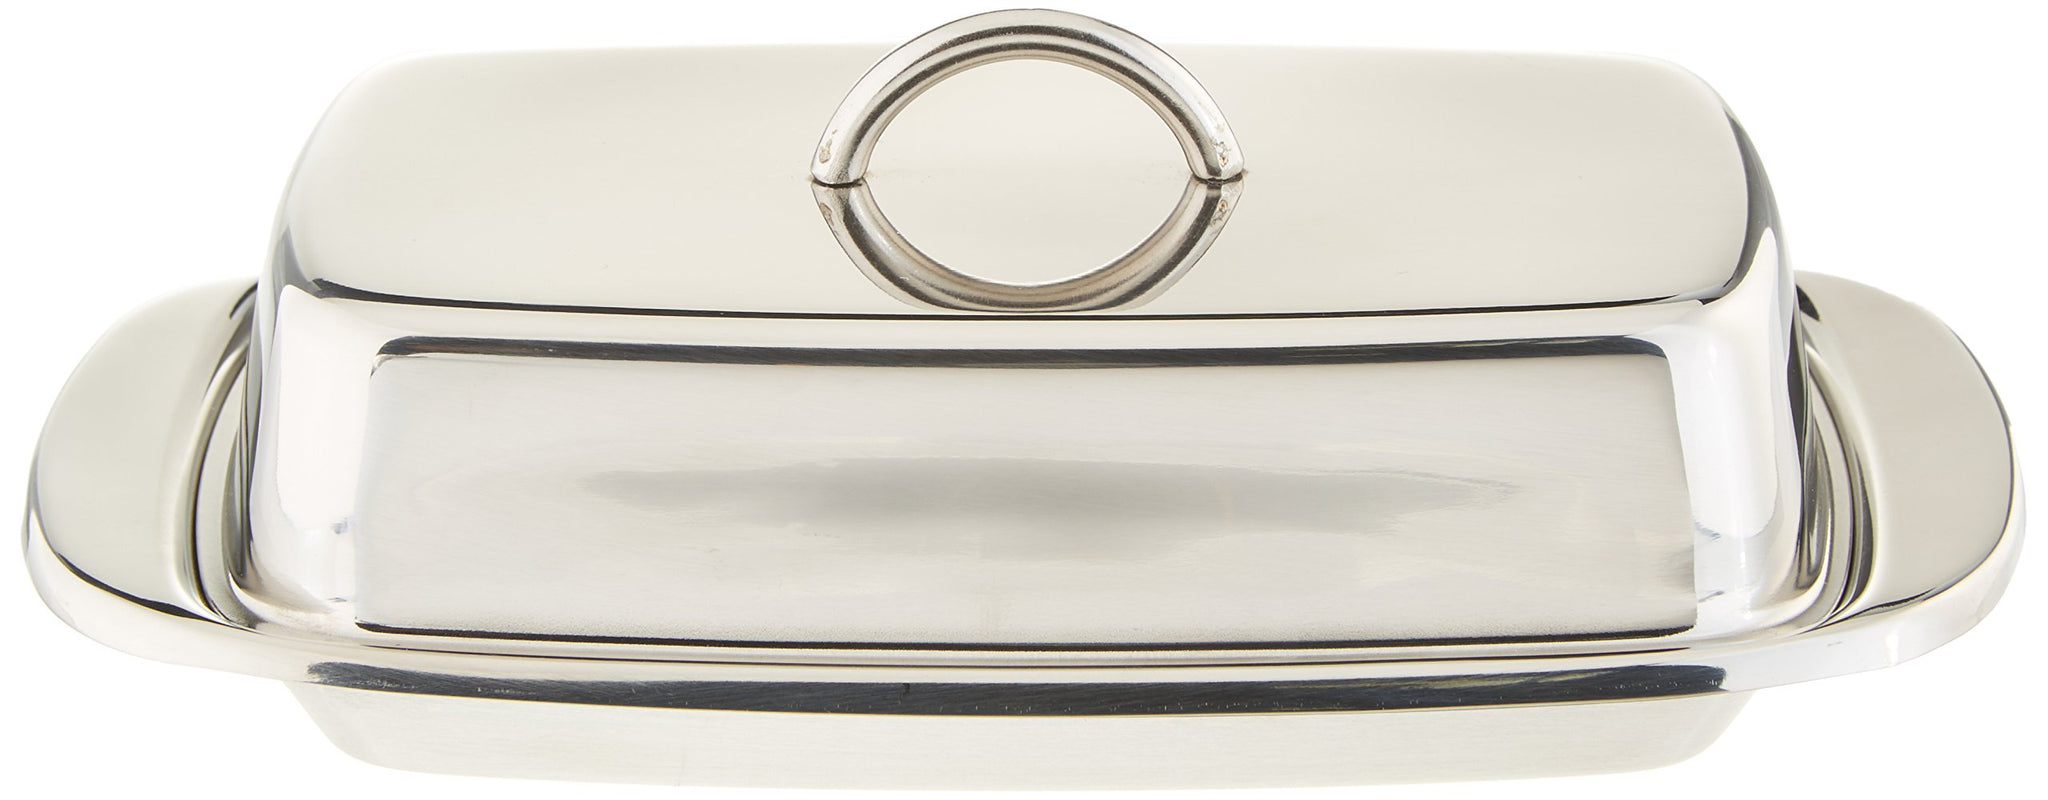 FanBell Stainless Steel Double Covered Butter Dish